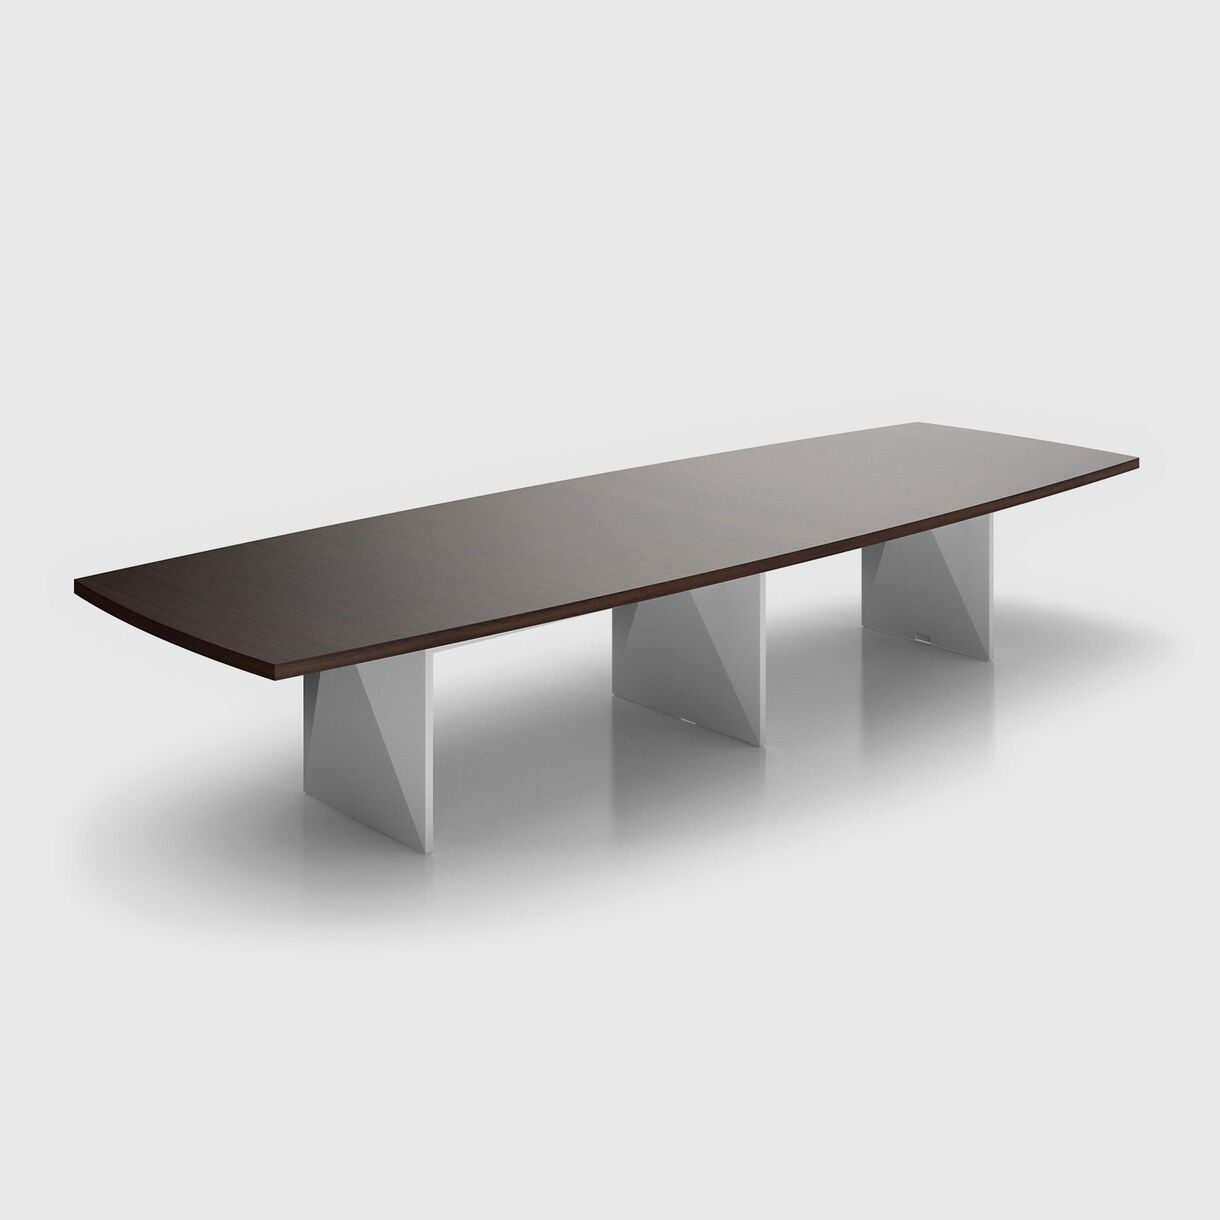 Scale Media Conference Table